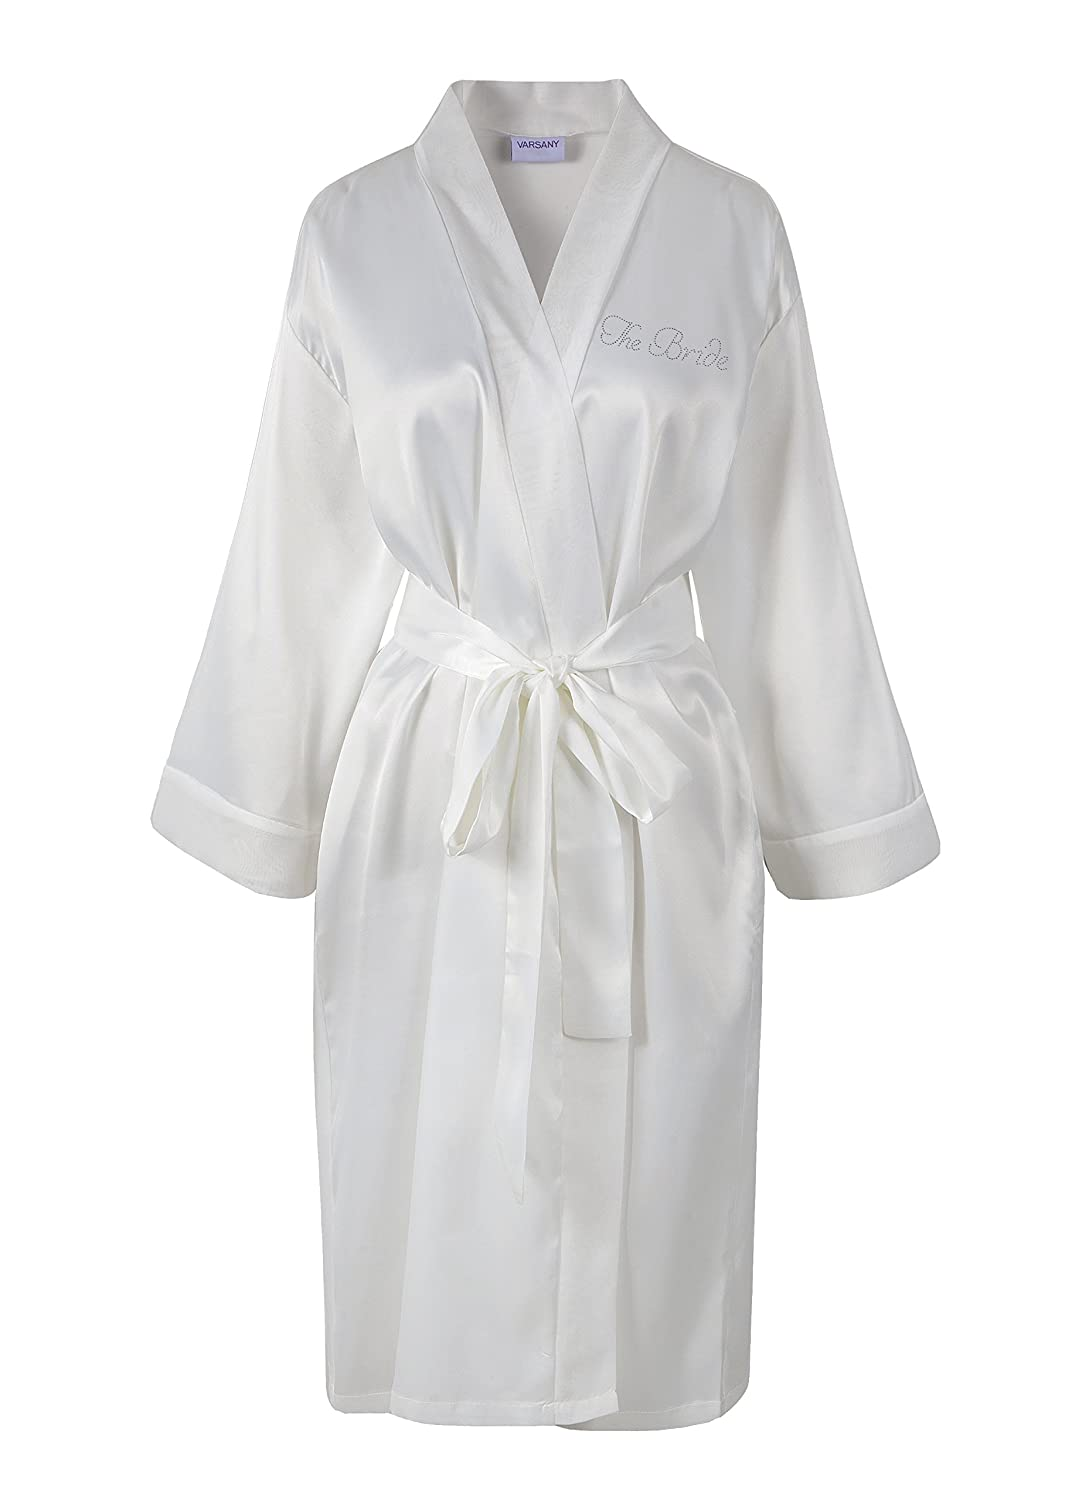 526d263be1c Ivory Varsany The Bride Satin Rhinestone Bathrobe Personalised Diamante  Dressing gown Kimono  Amazon.co.uk  Kitchen   Home